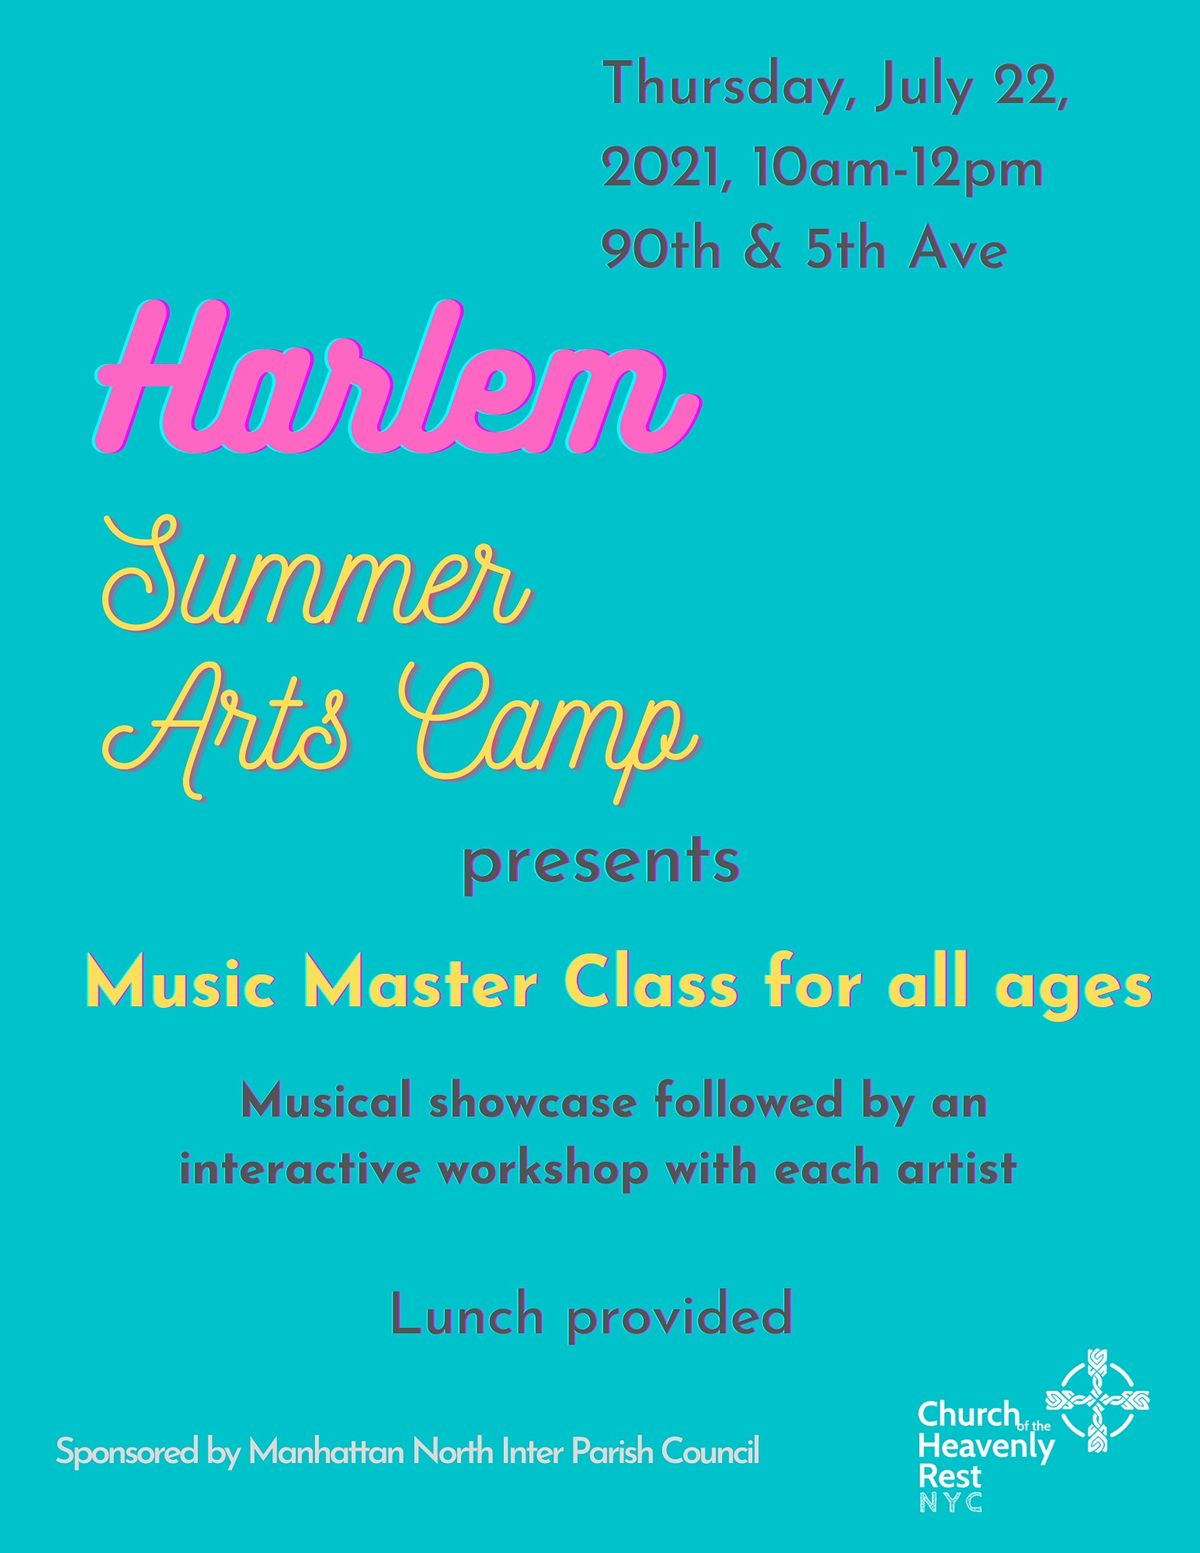 Harlem Summer Arts Music Master Class for all ages